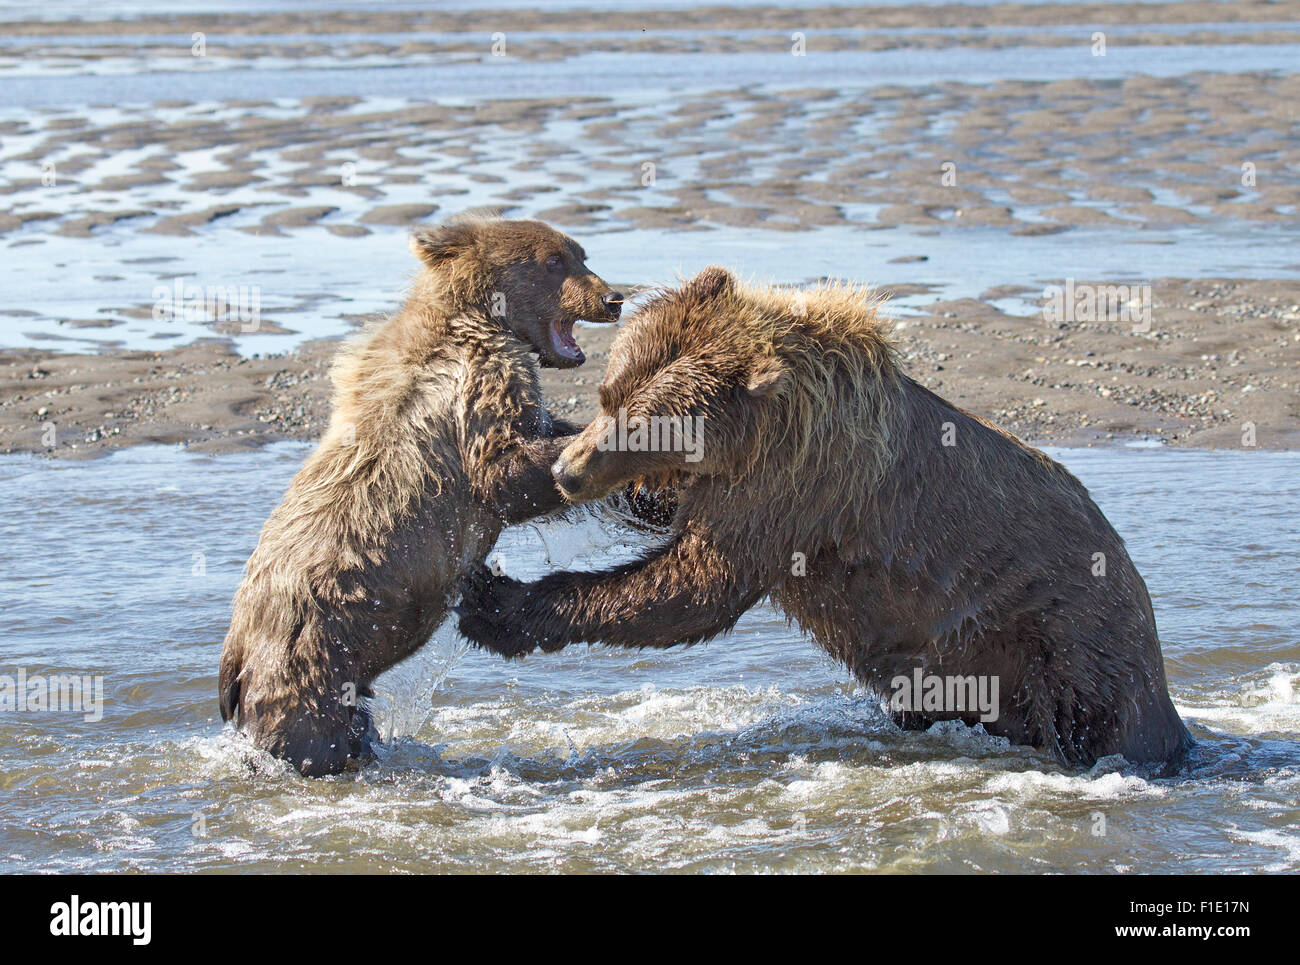 Second Year Grizzly Cub Sparring with Sow - Stock Image